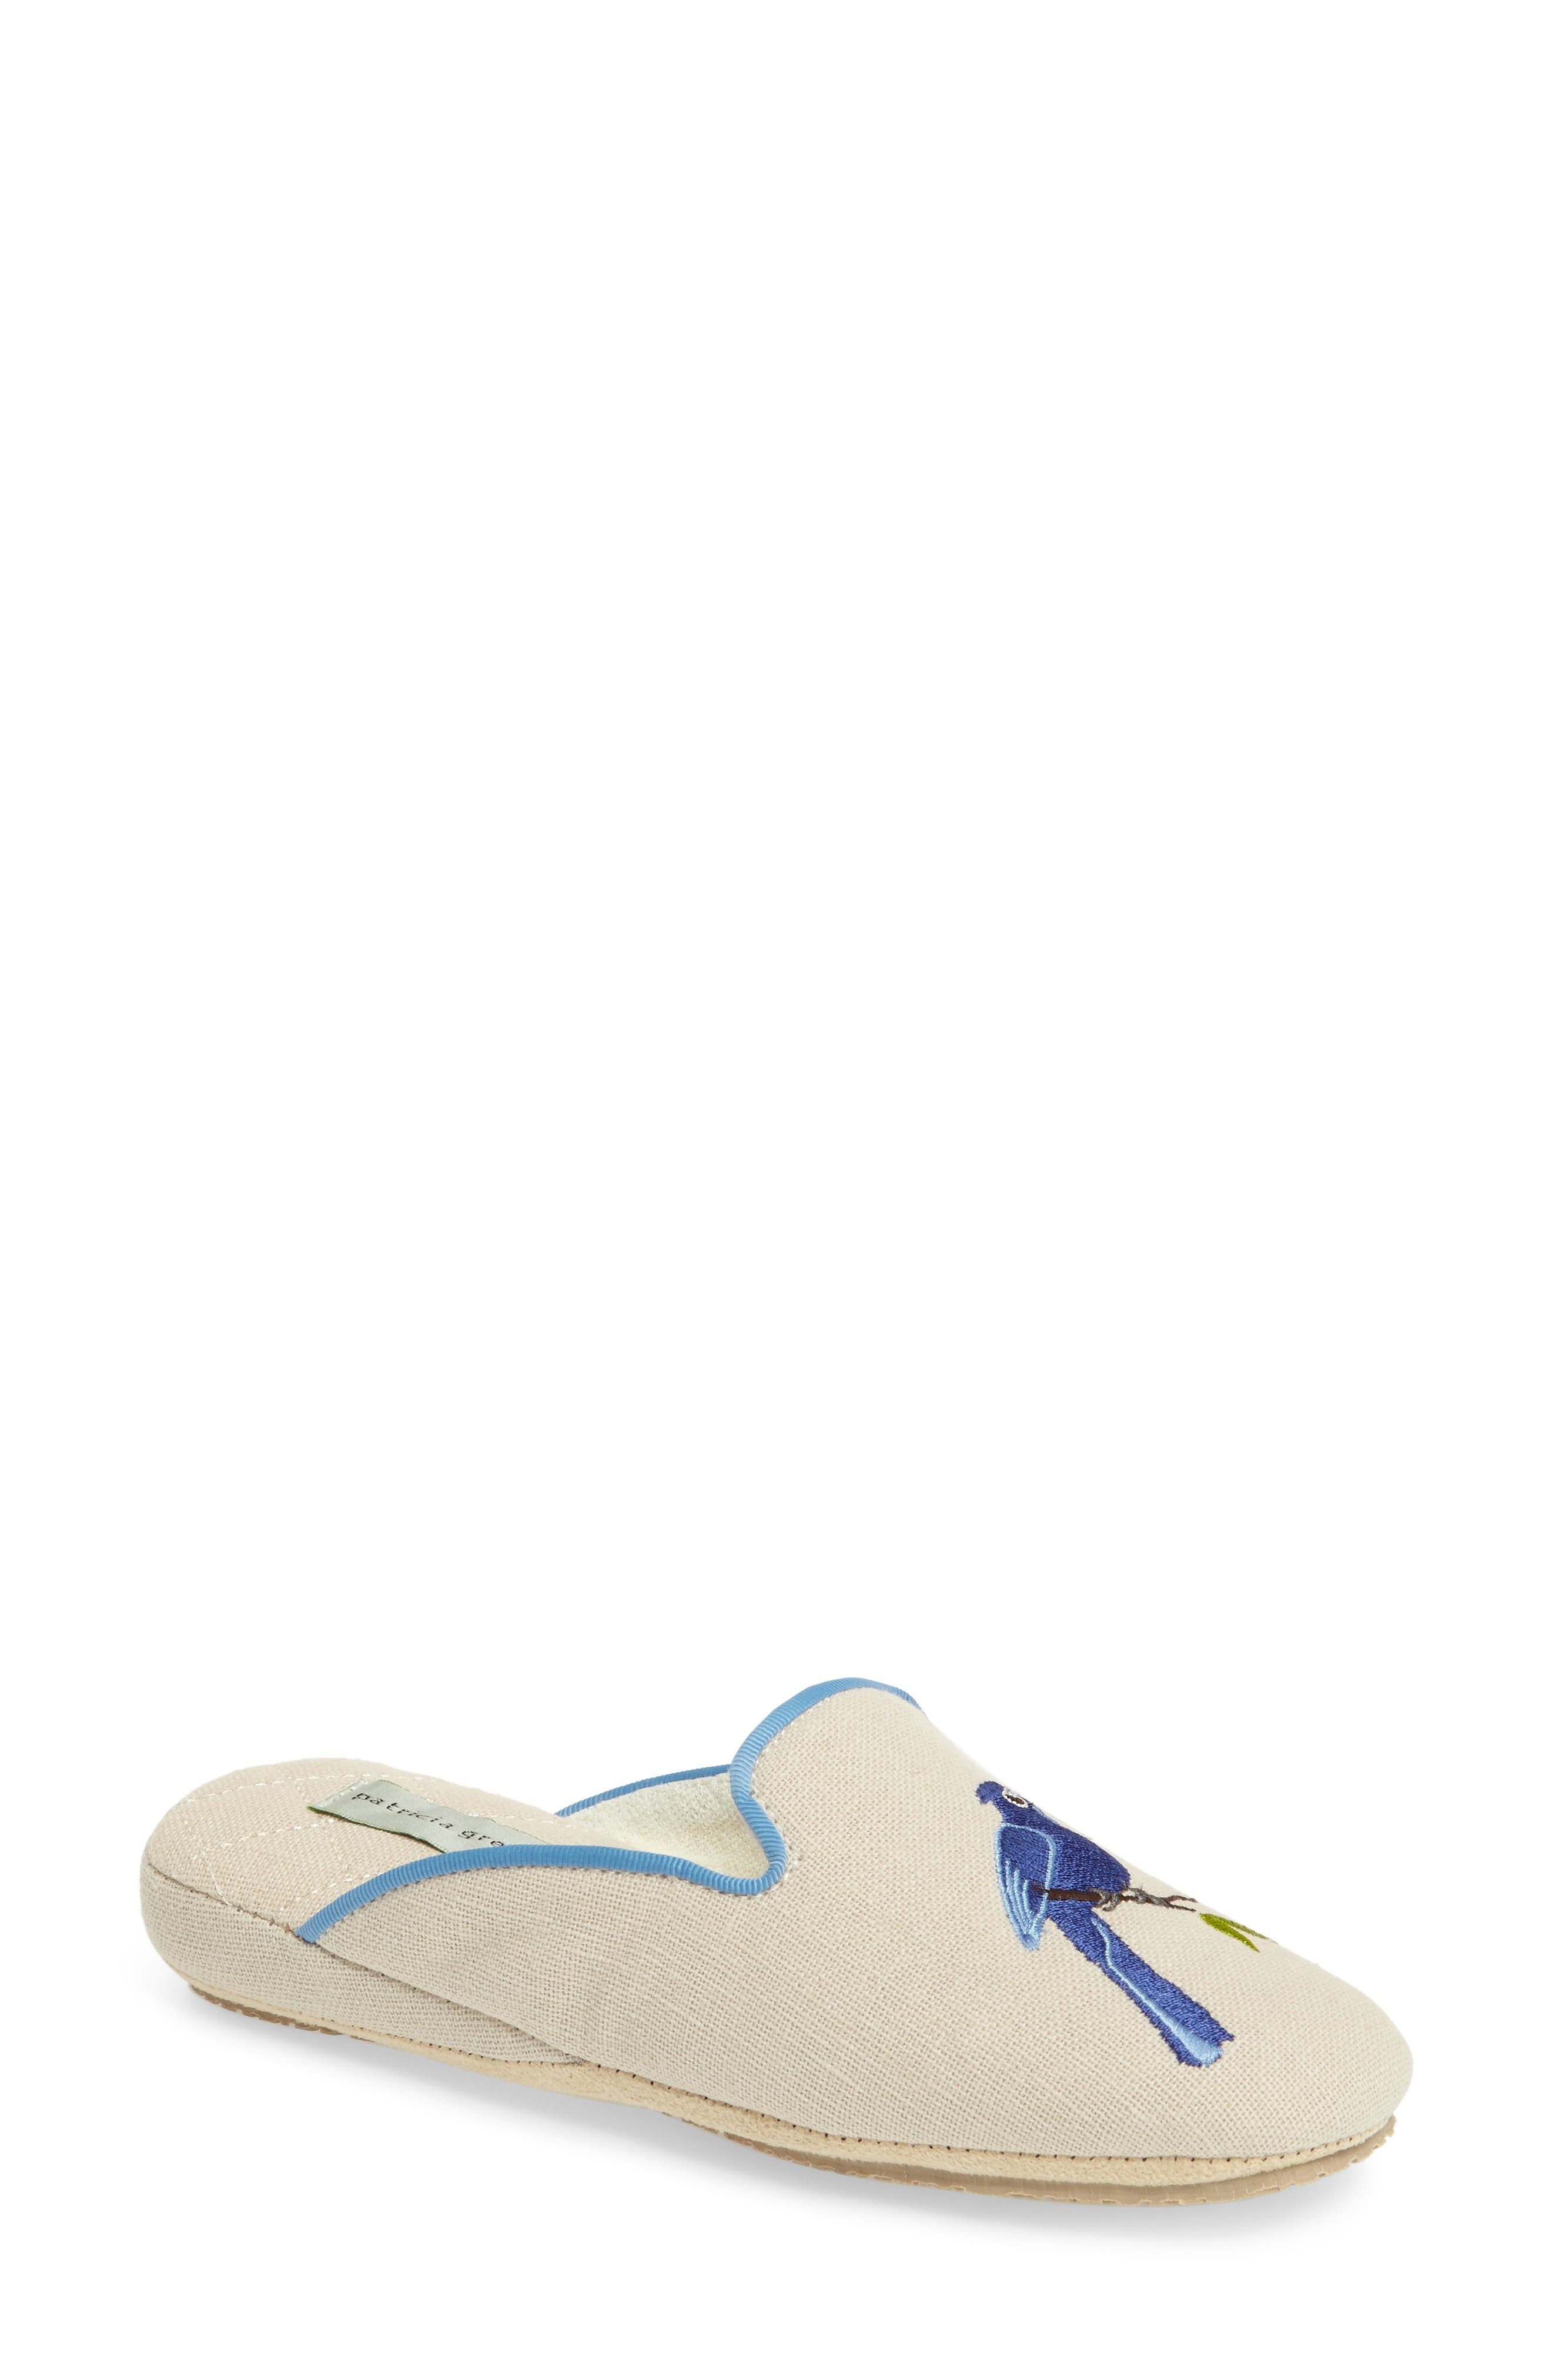 Bluebird Embroidered Slipper,                             Main thumbnail 1, color,                             Natural Fabric